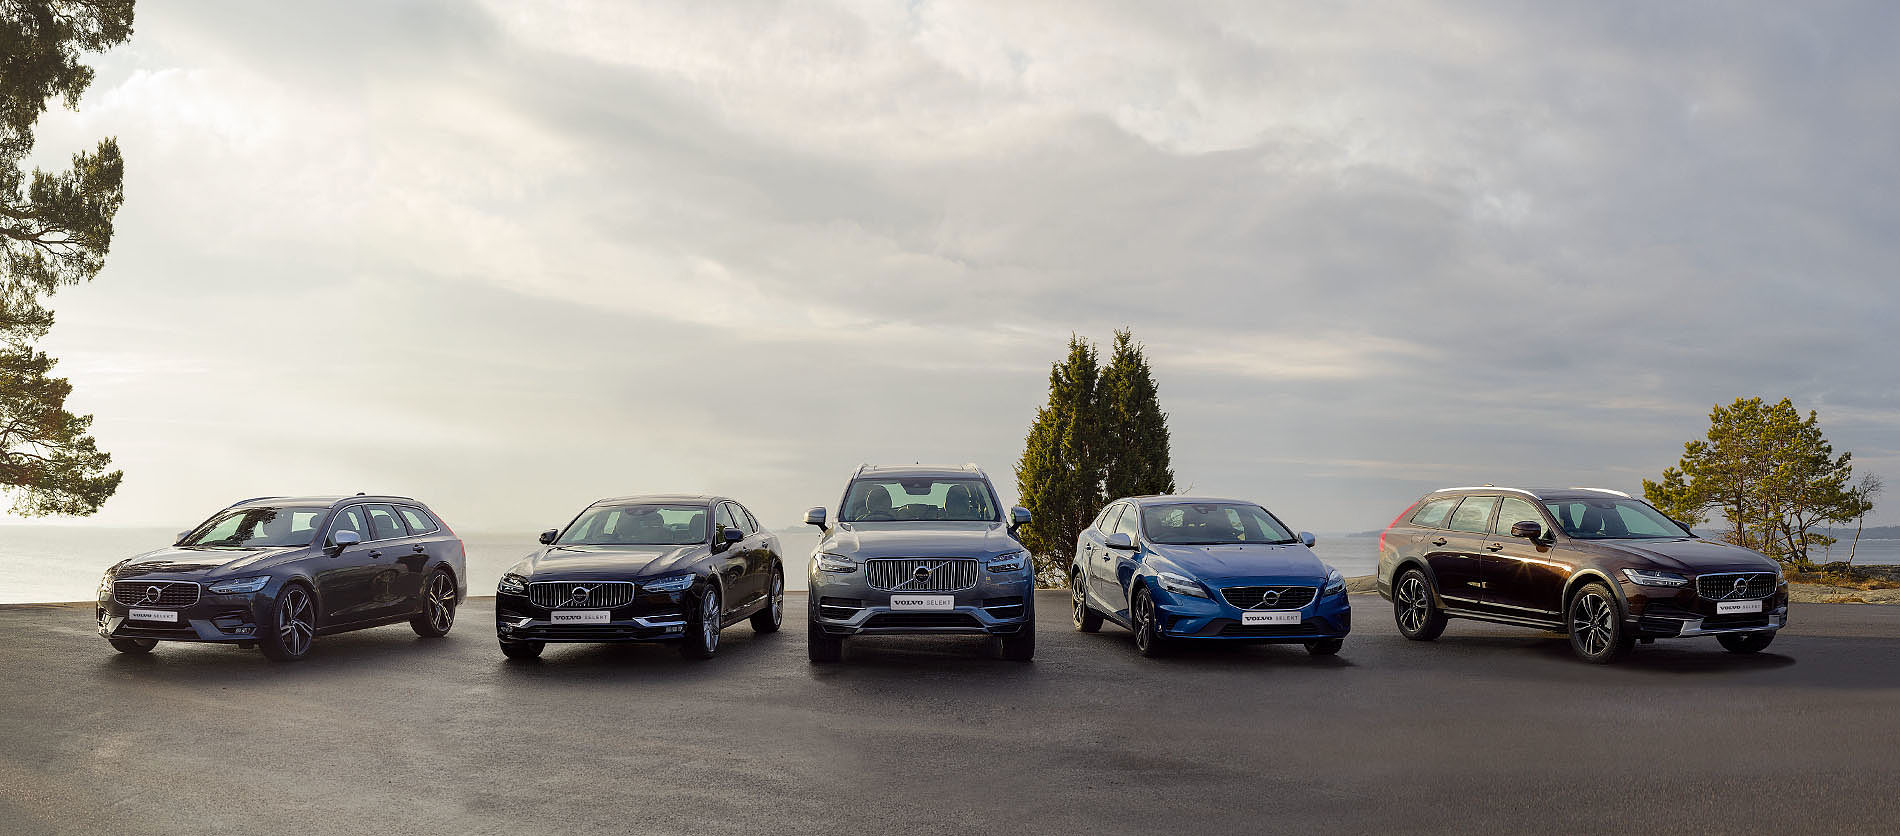 Volvo Selekt V40 Used Cars with 2 Years Complementary Servicing